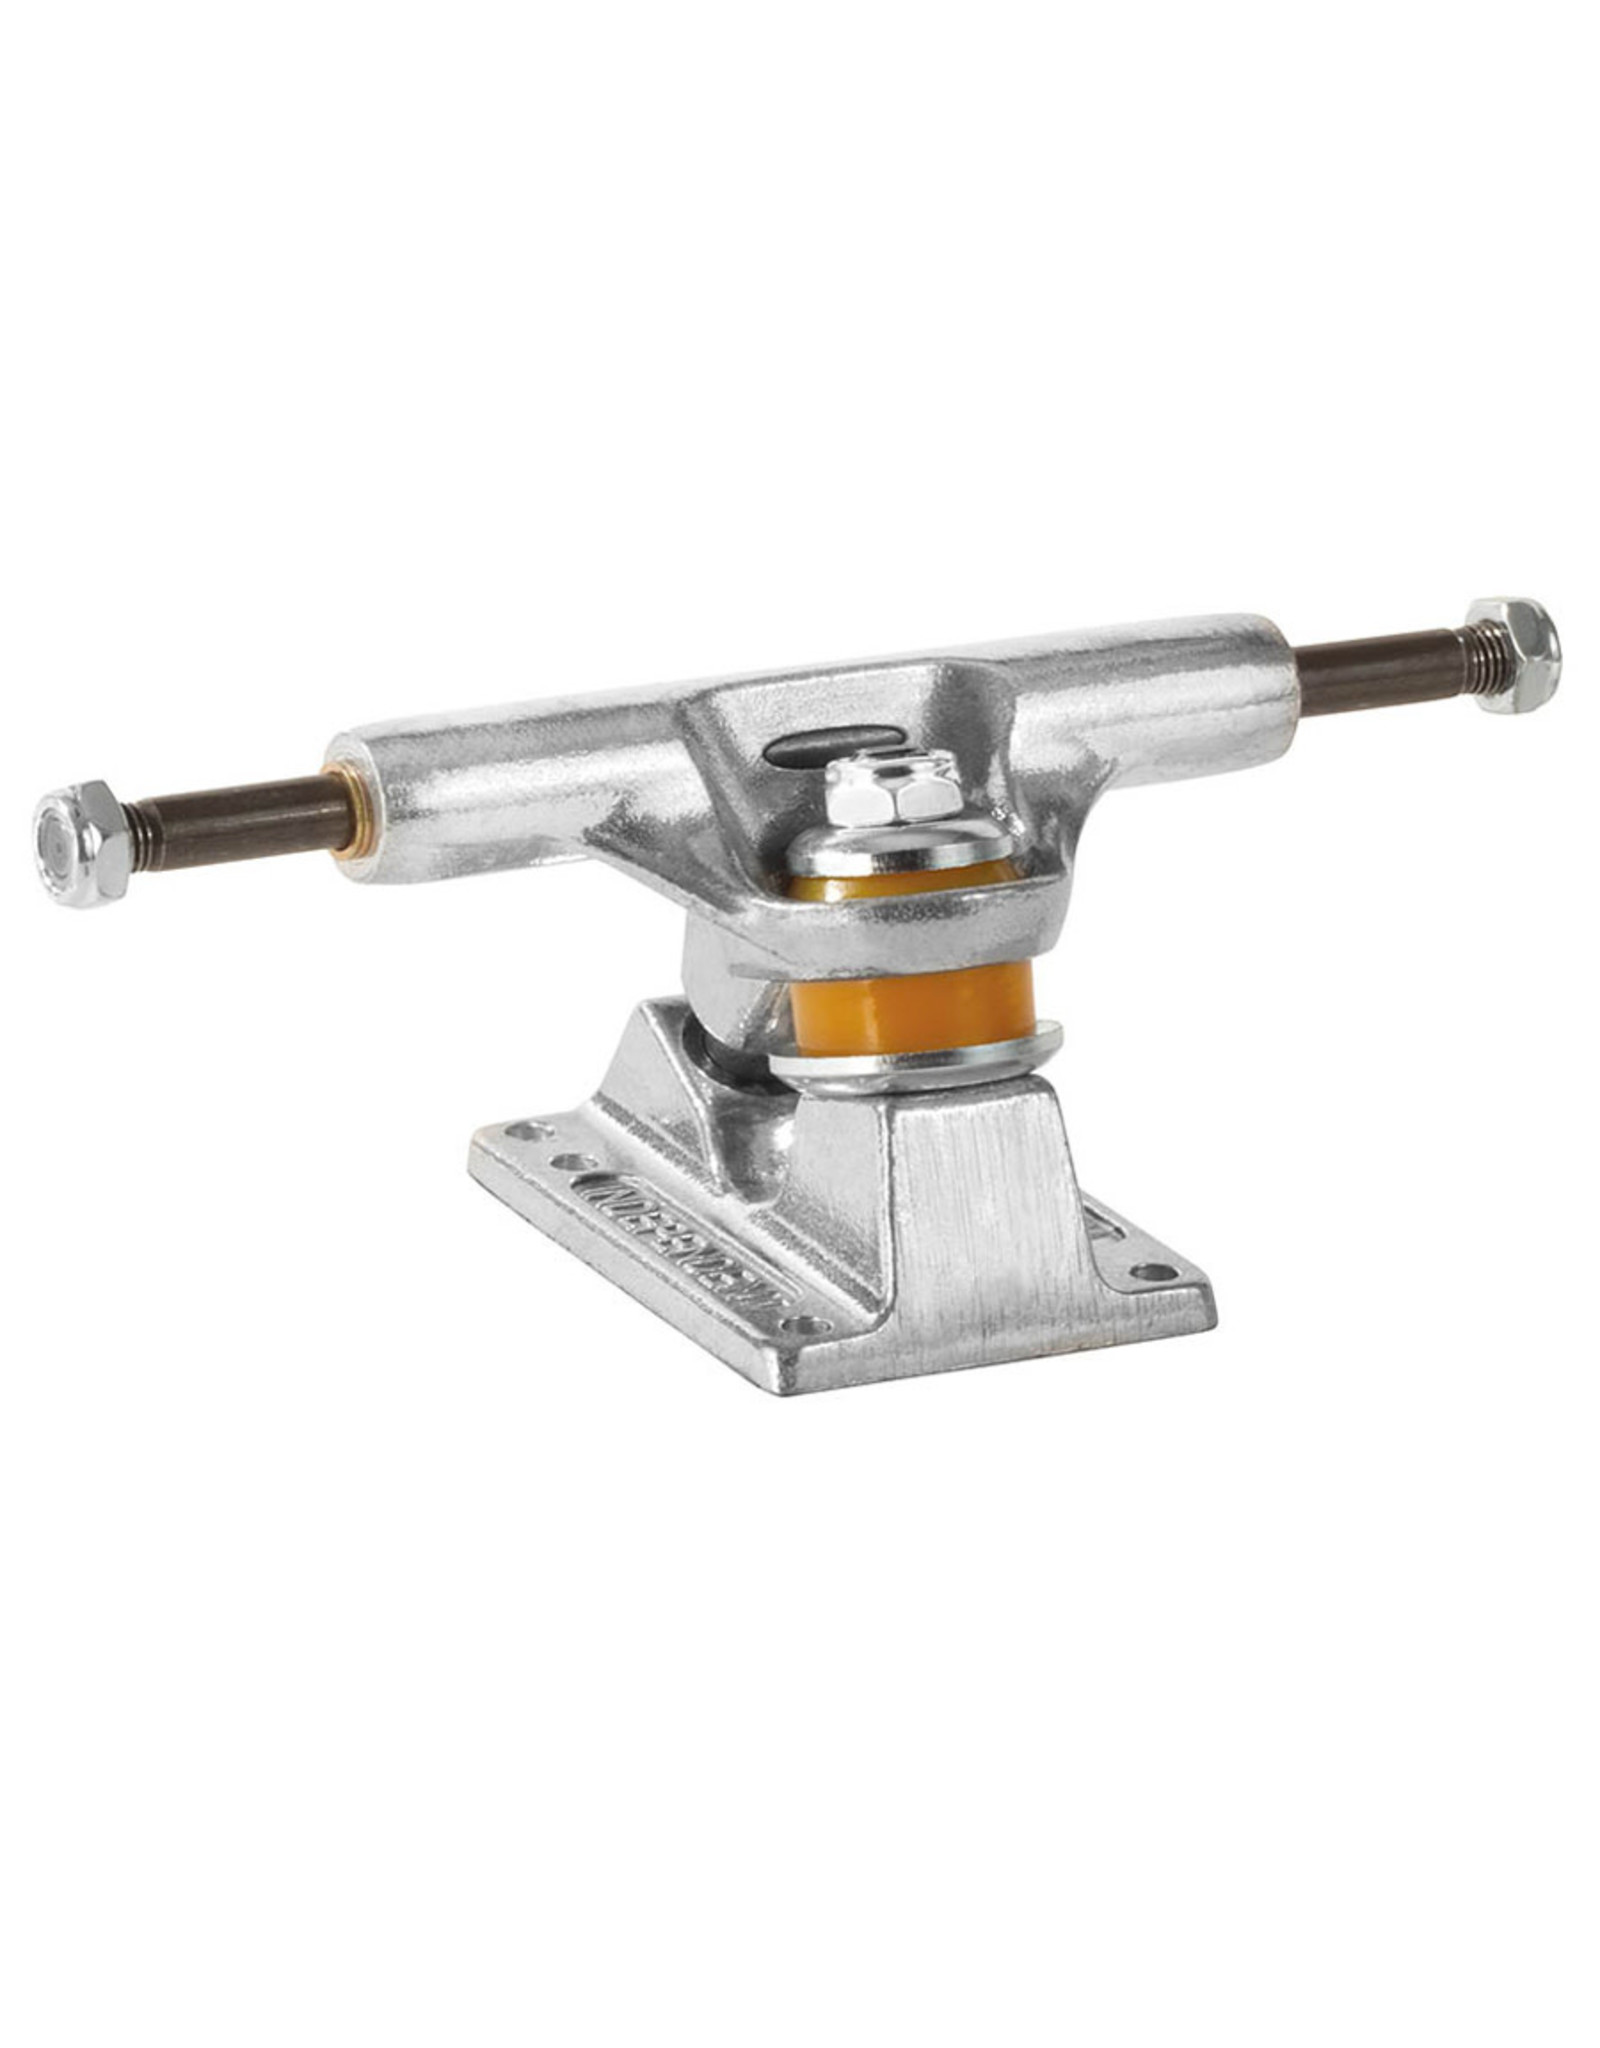 Independent Independent Trucks 109 Stage 11 Standard (Silver/Sold in Pair)